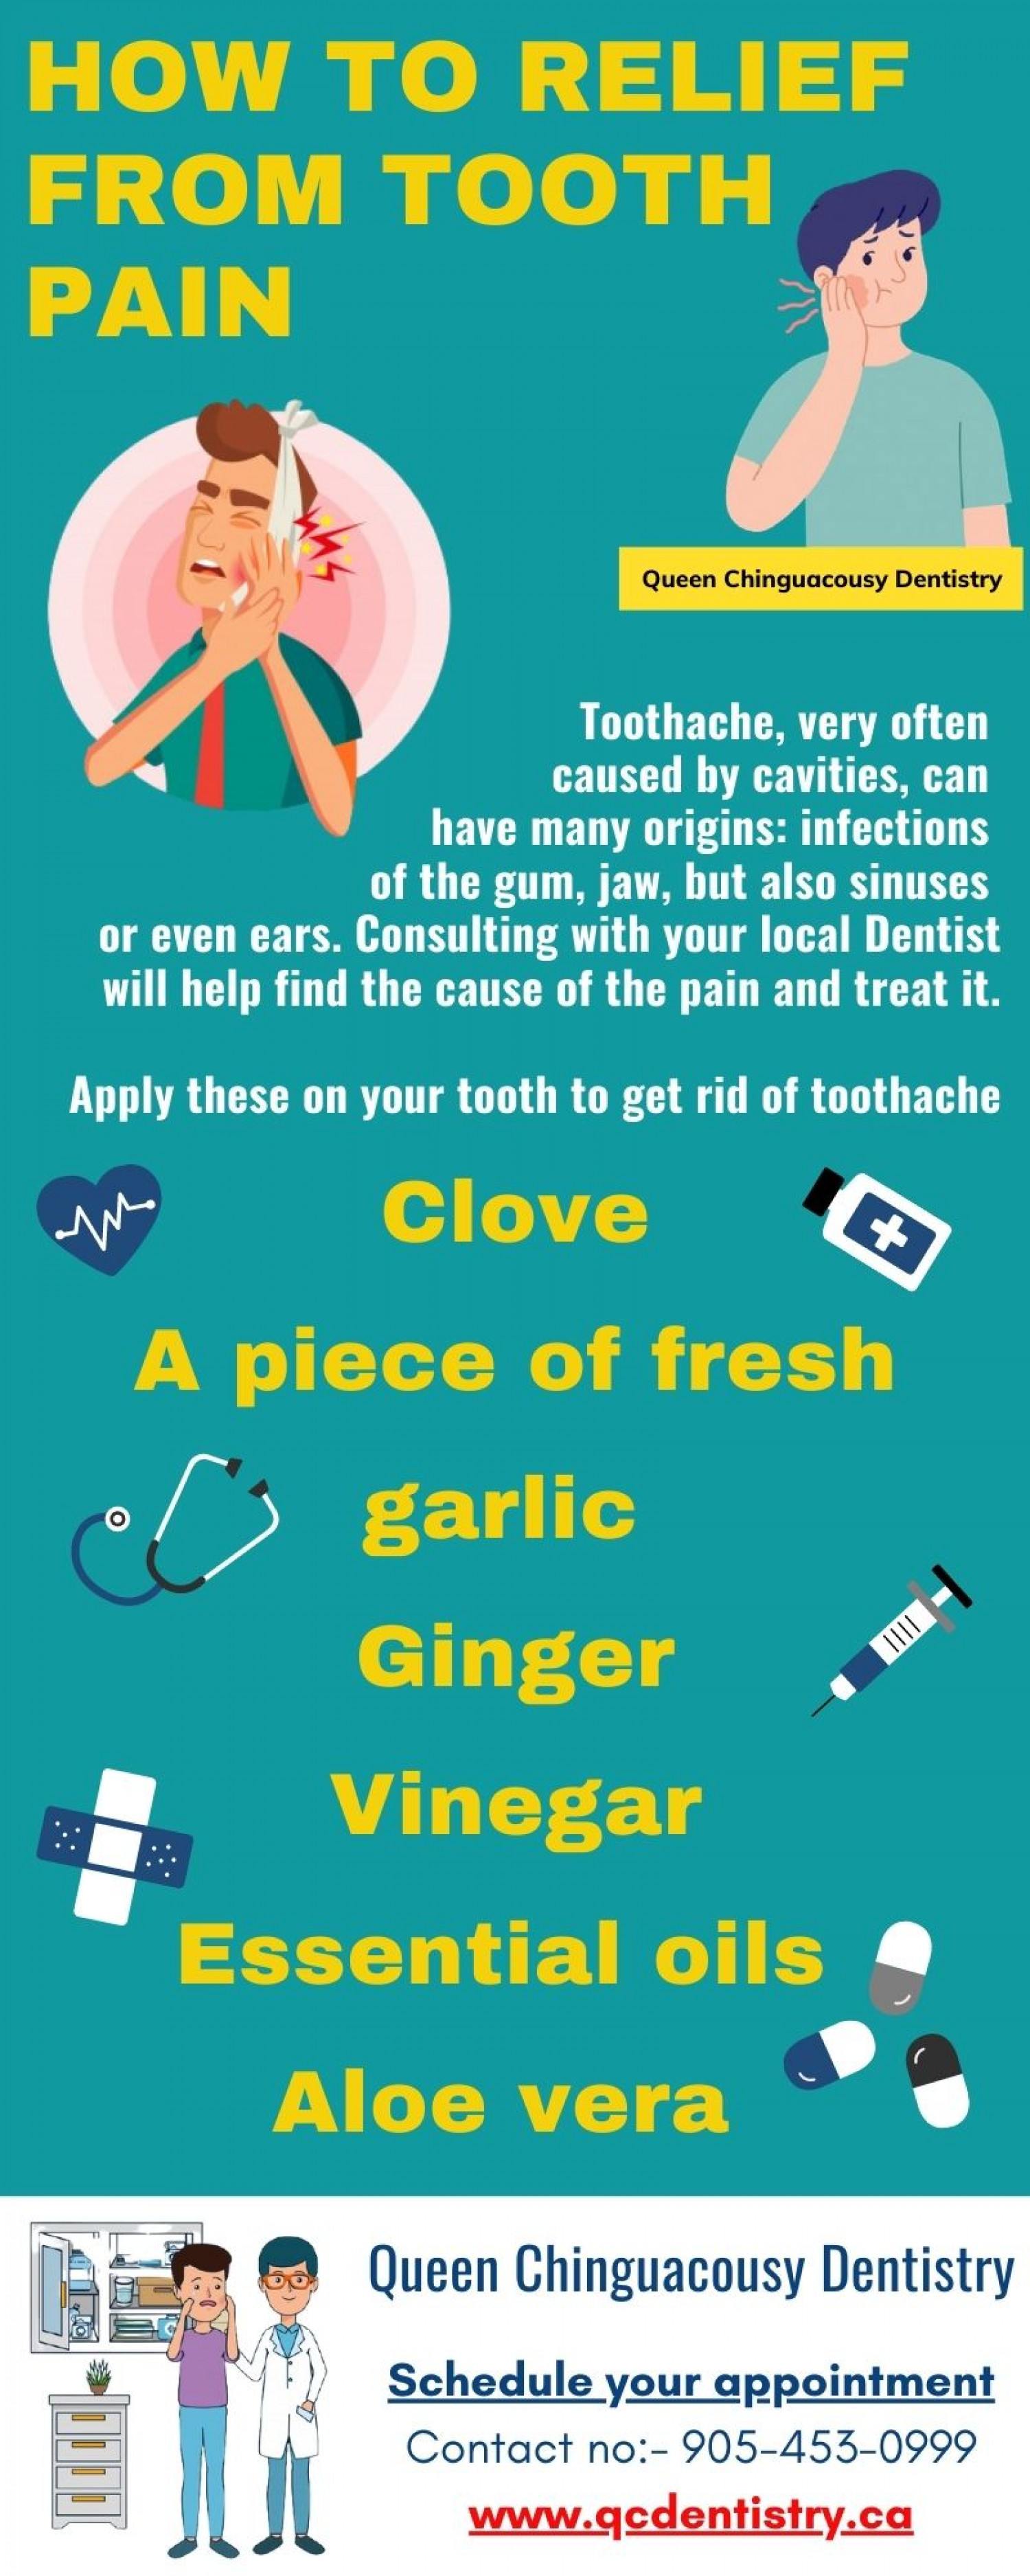 Toothache: How to Relief from Tooth Pain Infographic